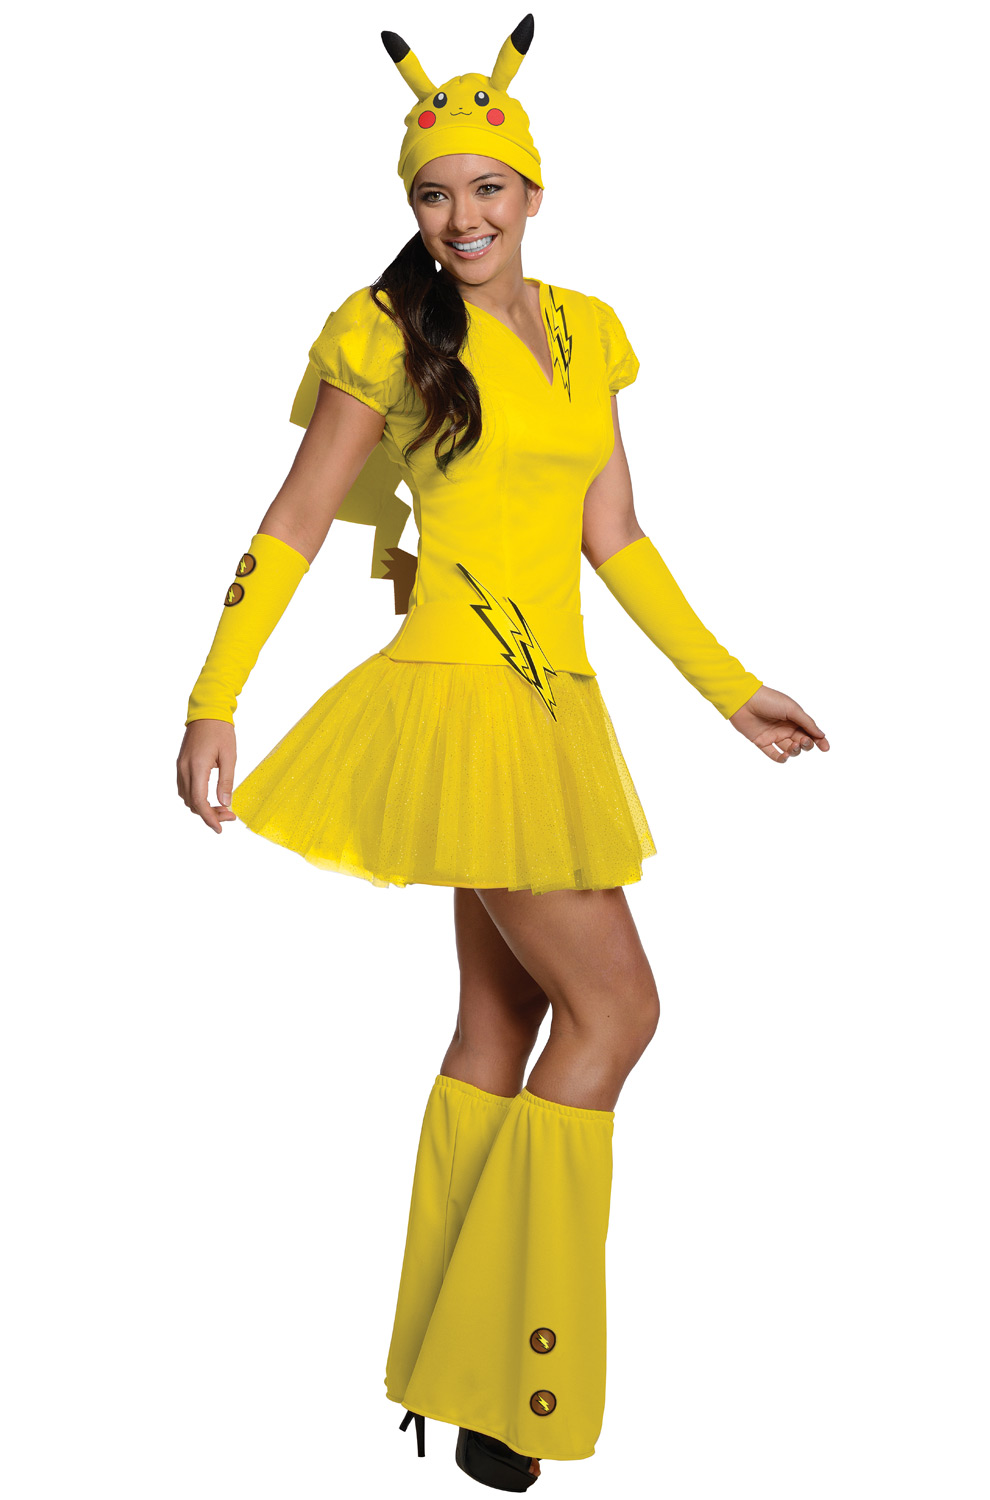 Female Pikachu Adult Costume